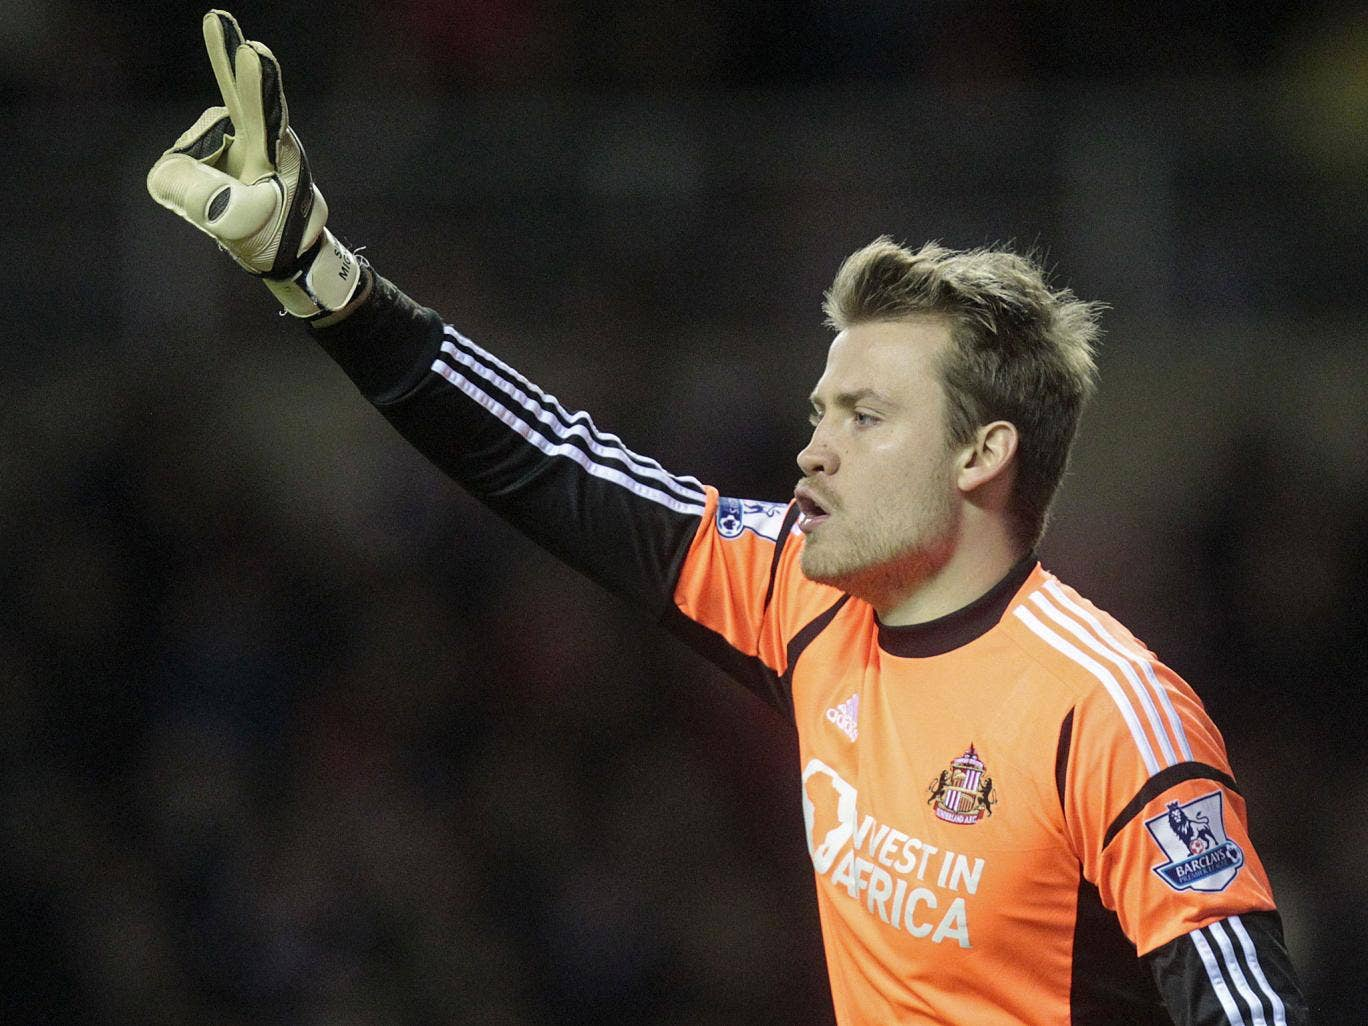 Mignolet, 25, has been in fine form for Sunderland, attracting the attention of Arsenal manager Arsene Wenger and former Manchester United boss Alex Ferguson